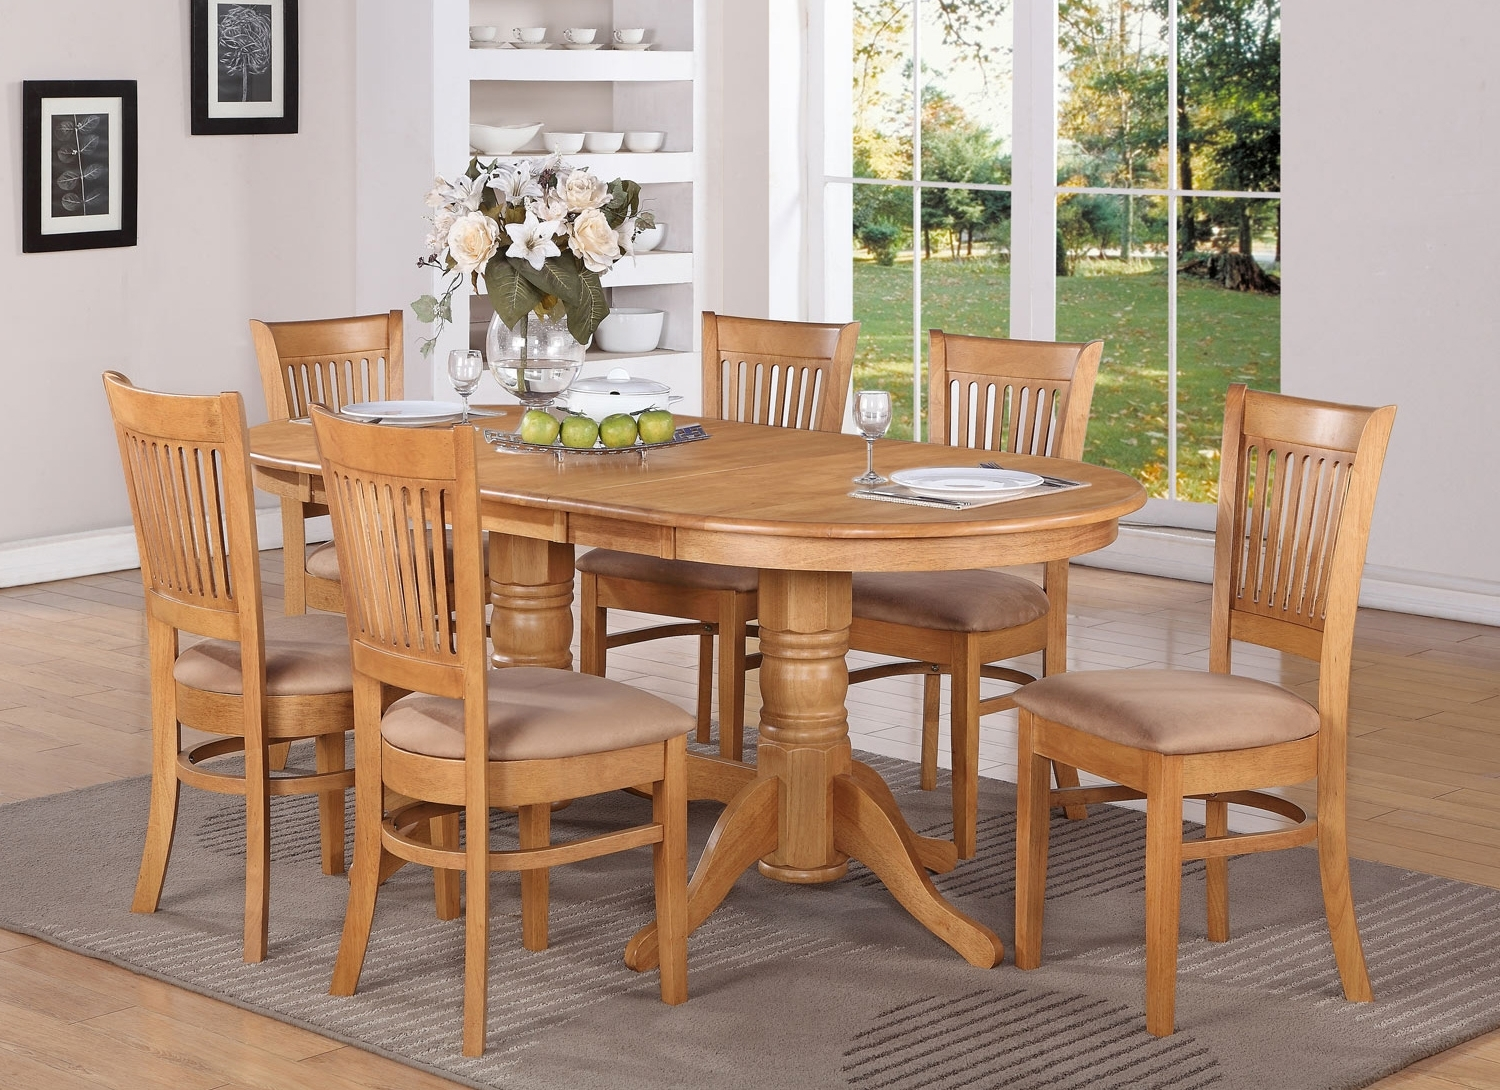 7 Pc Dining Room Set Table With A Leaf And 6 Dining Chairs Intended For Widely Used Light Oak Dining Tables And 6 Chairs (View 2 of 25)